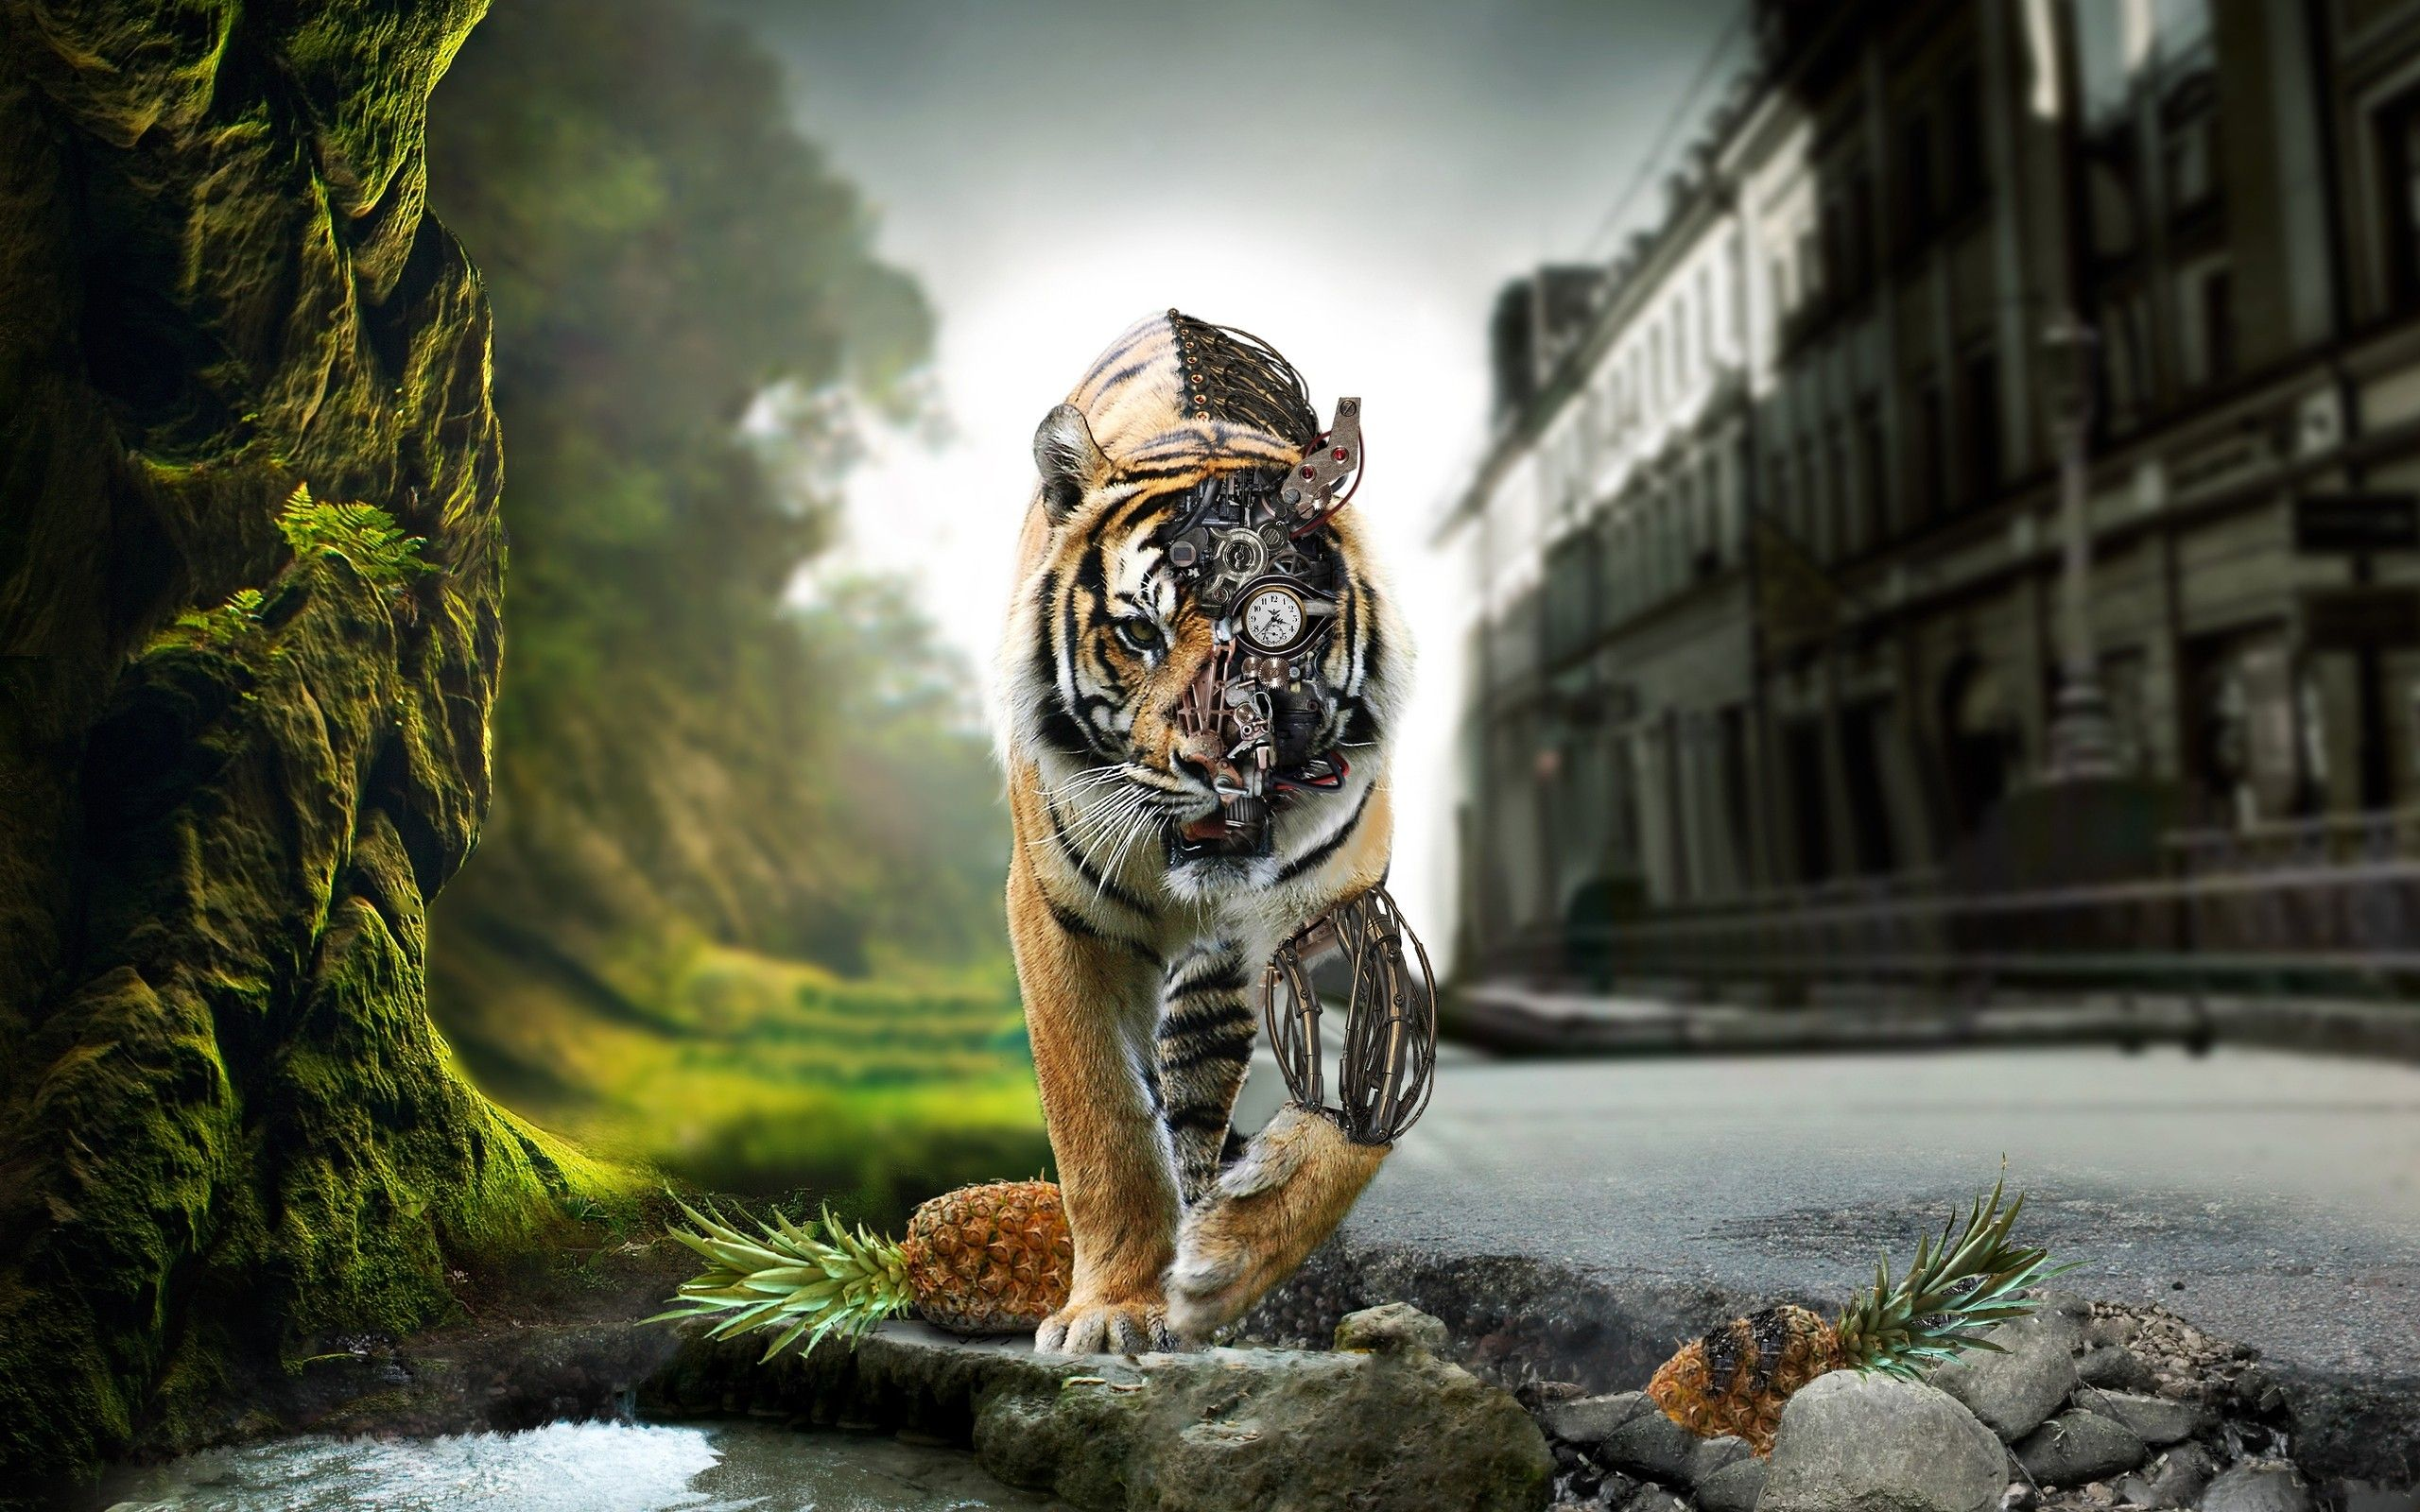 Best Wallpaper High Quality Tiger - f4ed76093299eb5308e777358ed18a32  Graphic_93628.jpg